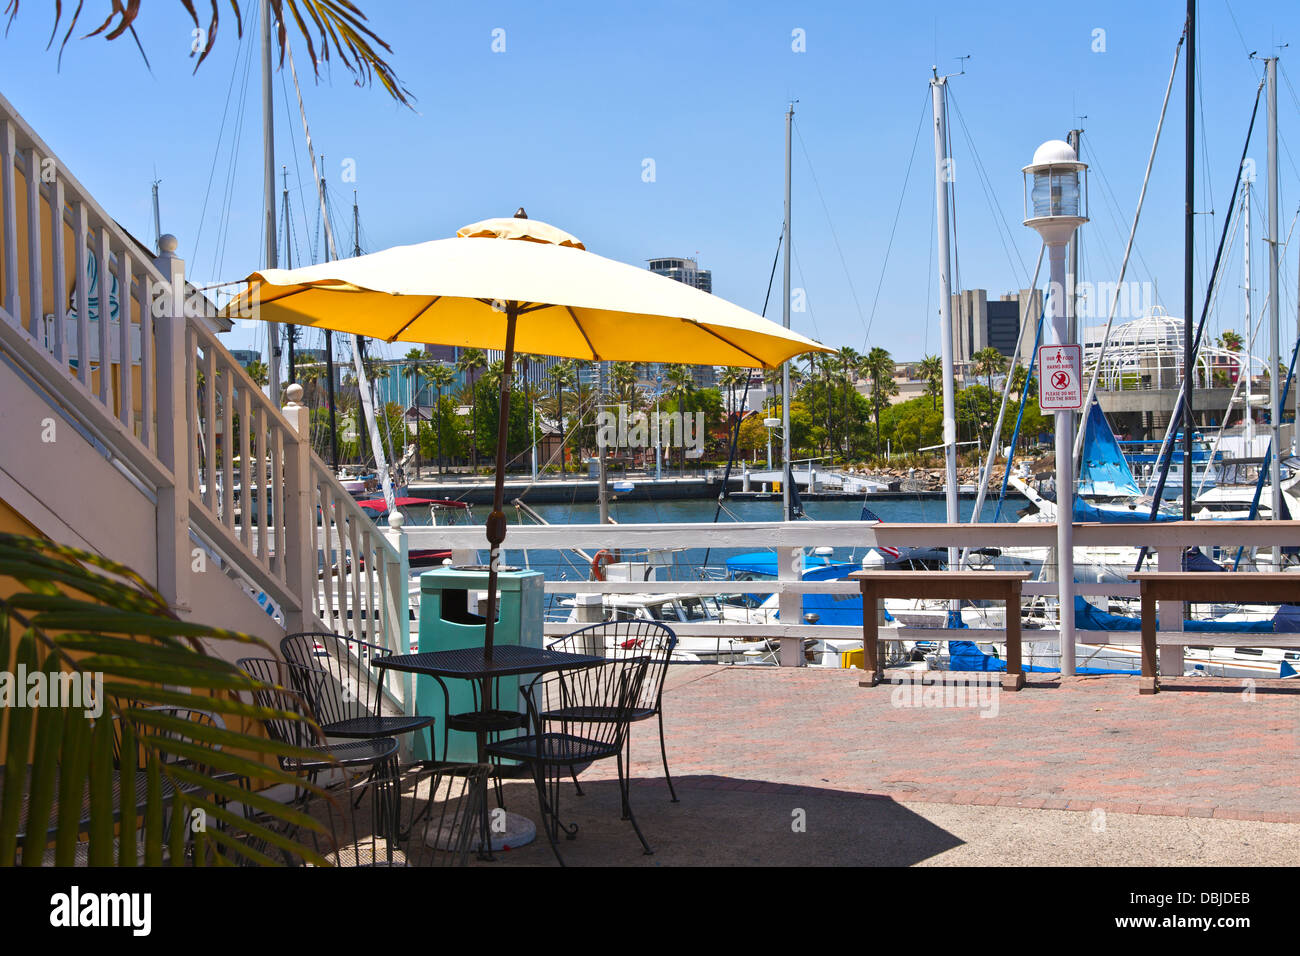 Yellow umbrella and accommodations in Long Beach California. - Stock Image